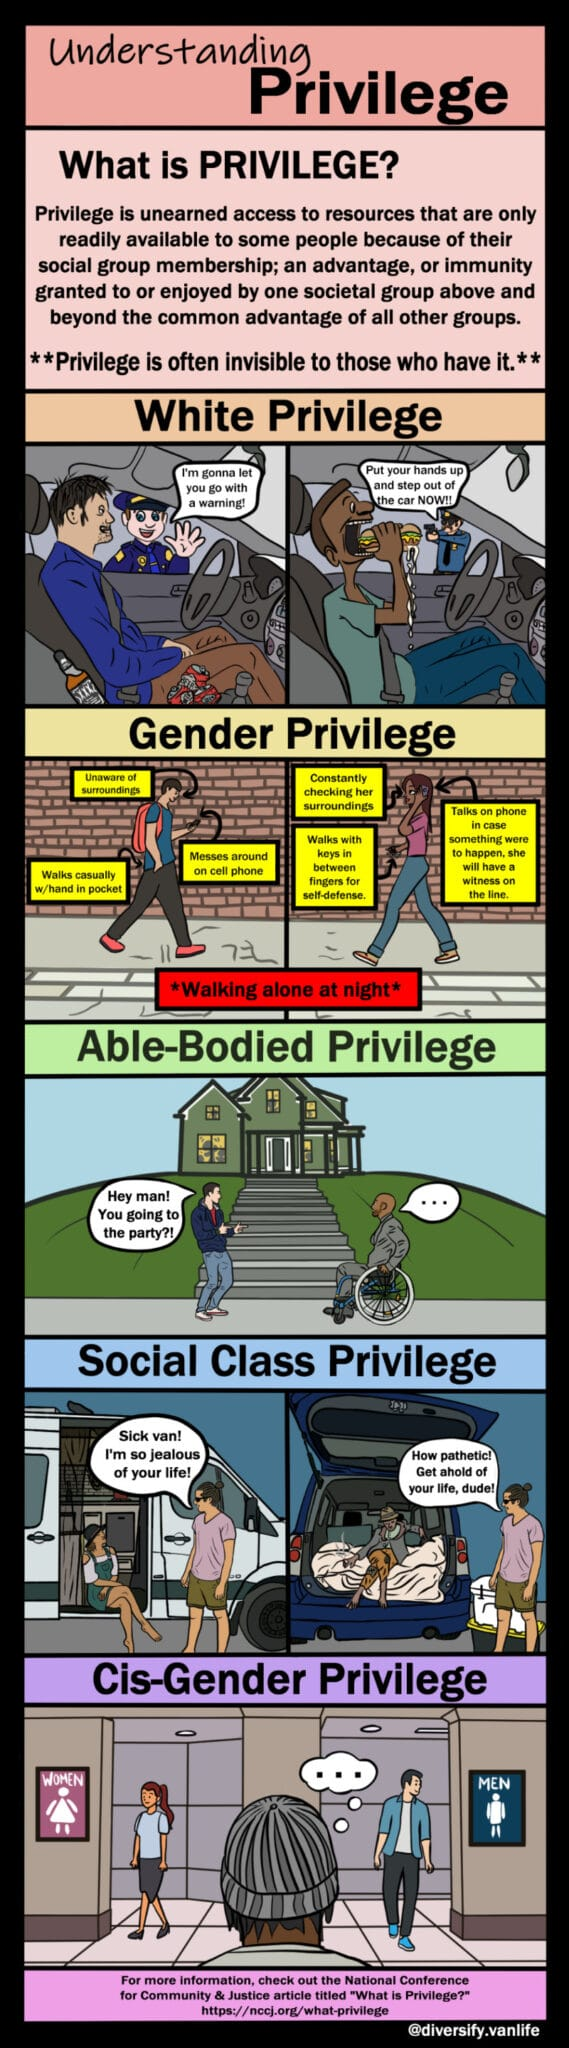 Comic strip depicting white privilege, gender privilege, able-bodied privilege, social class privilege, and cis-gender privilege